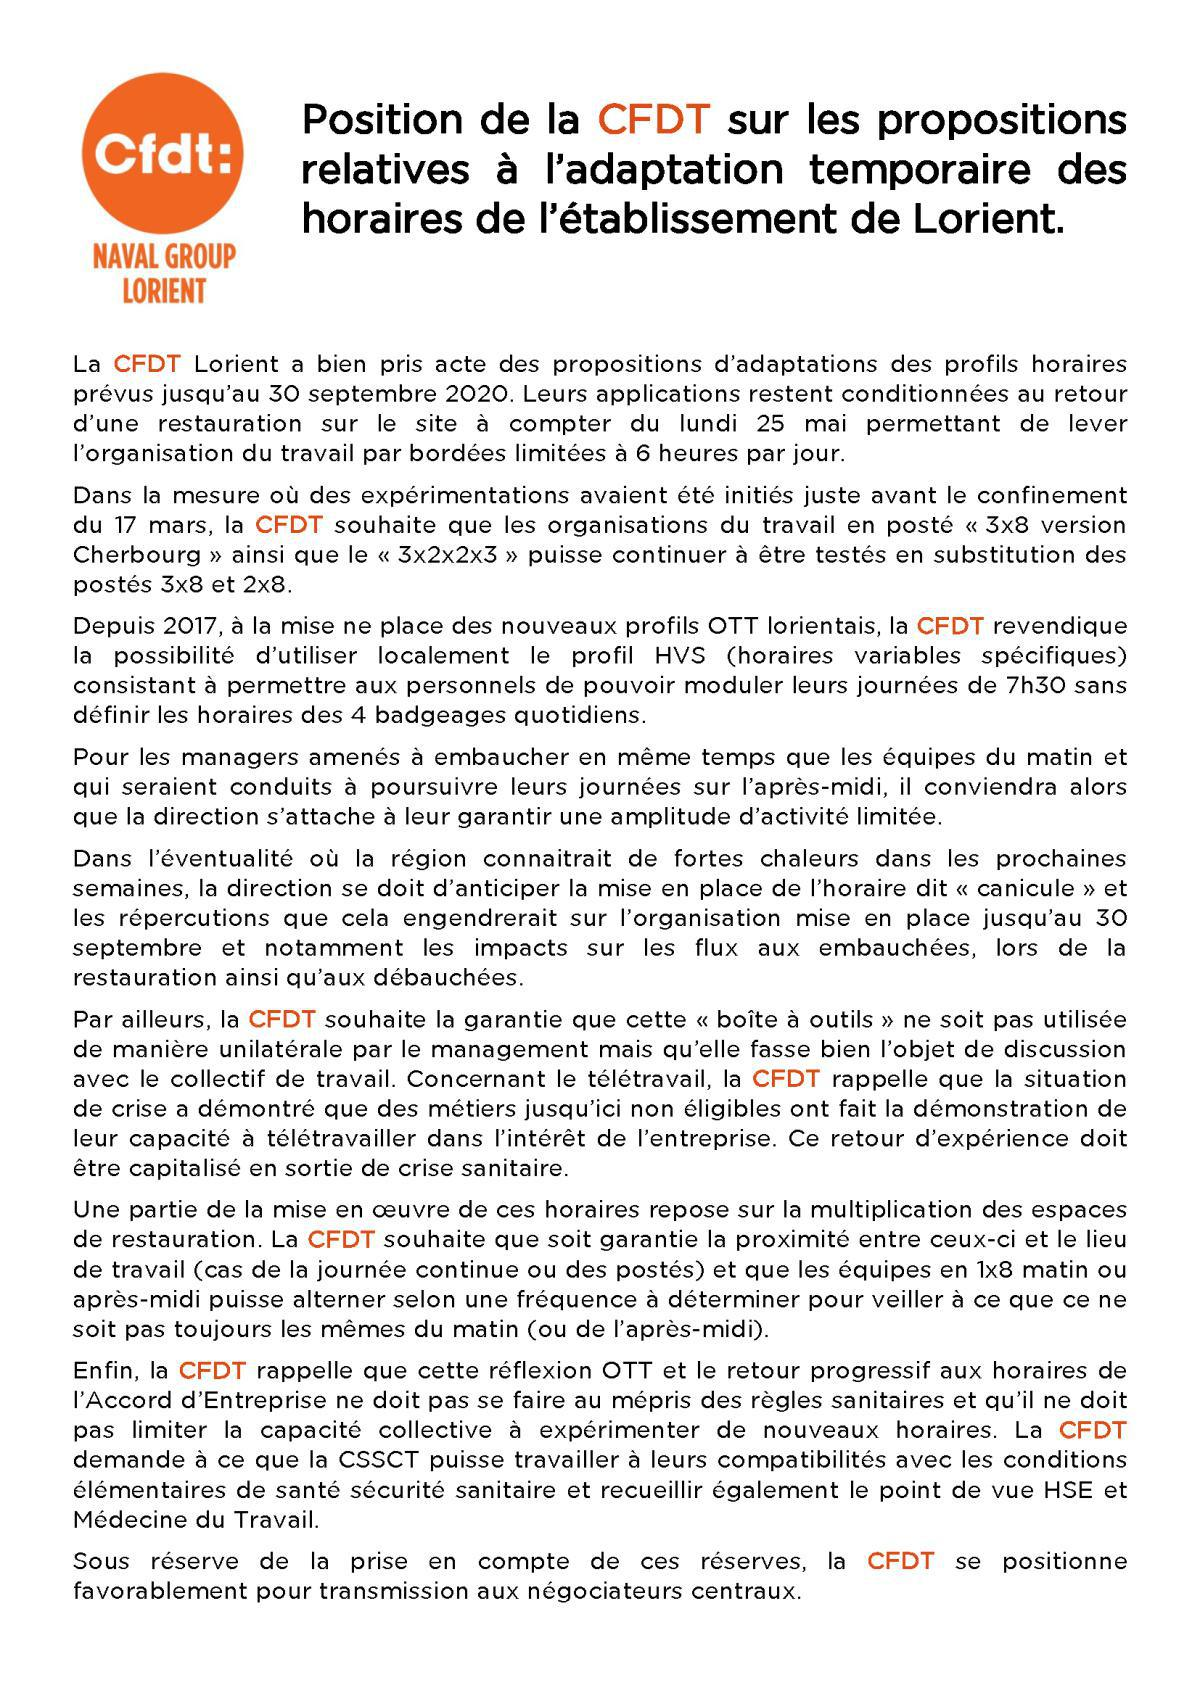 La CFDT favorable à l'adaptation de l'OTT local